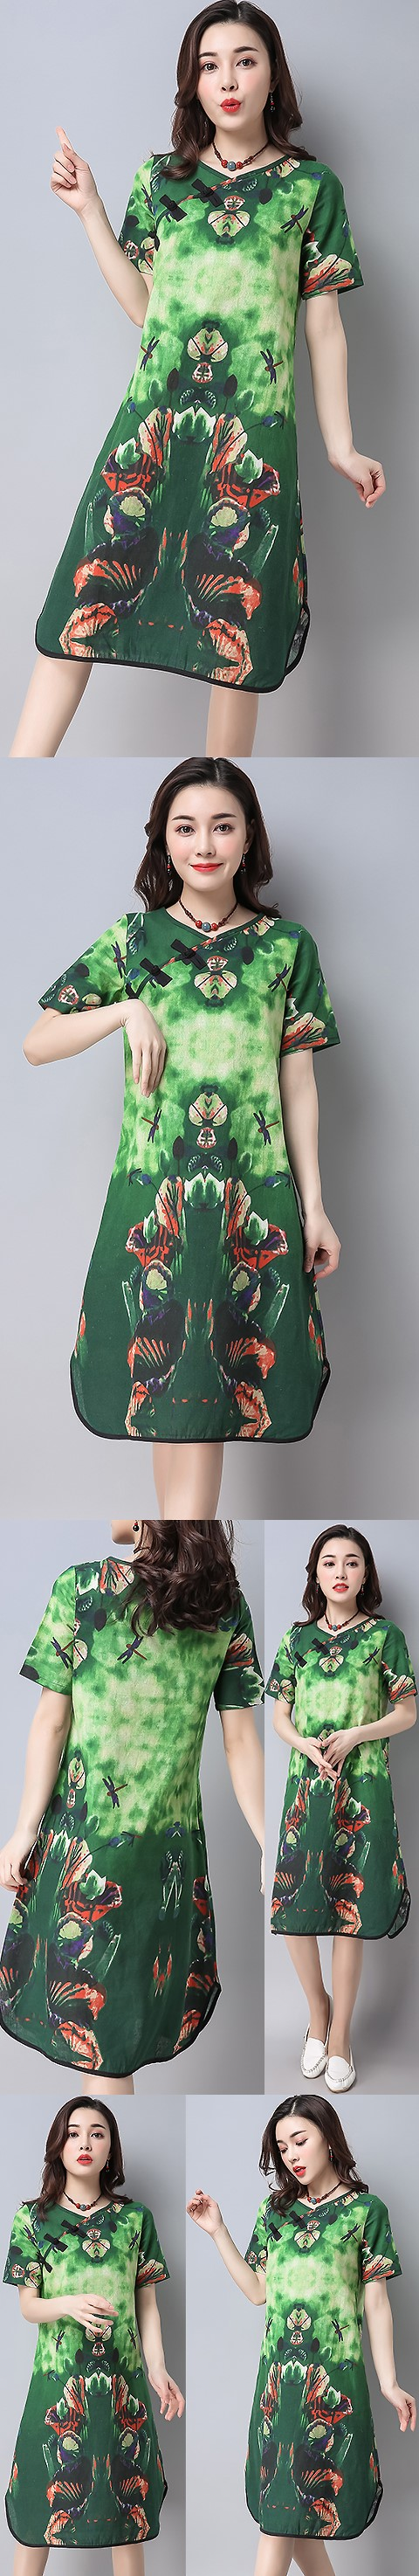 Cross-collar Ethnic Dress-Green (RM)